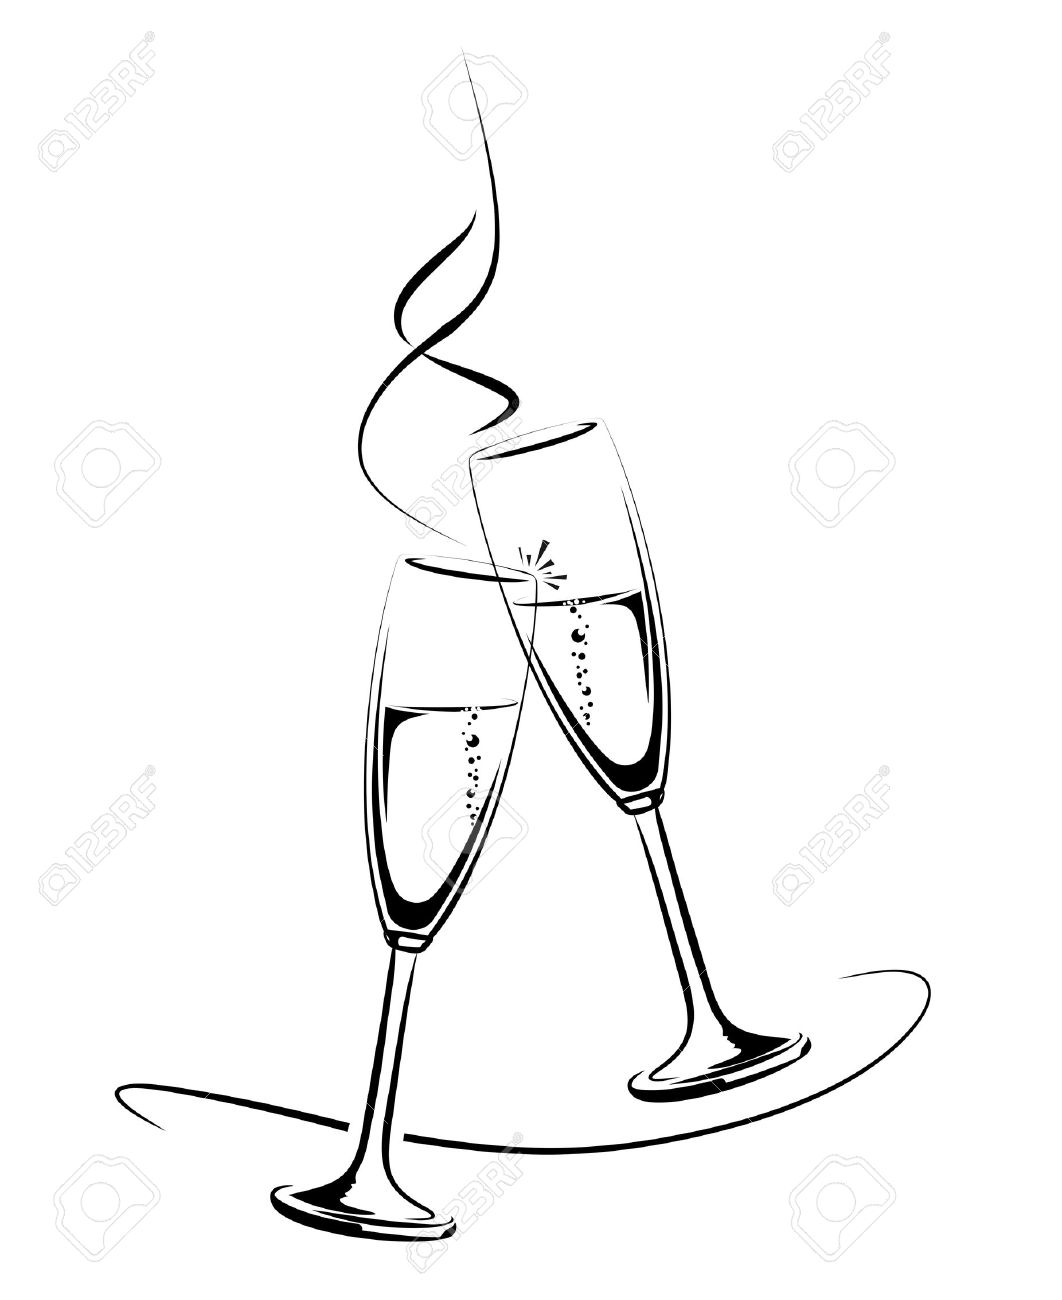 Champaign clipart champagne clink. Bottle drawing at getdrawings